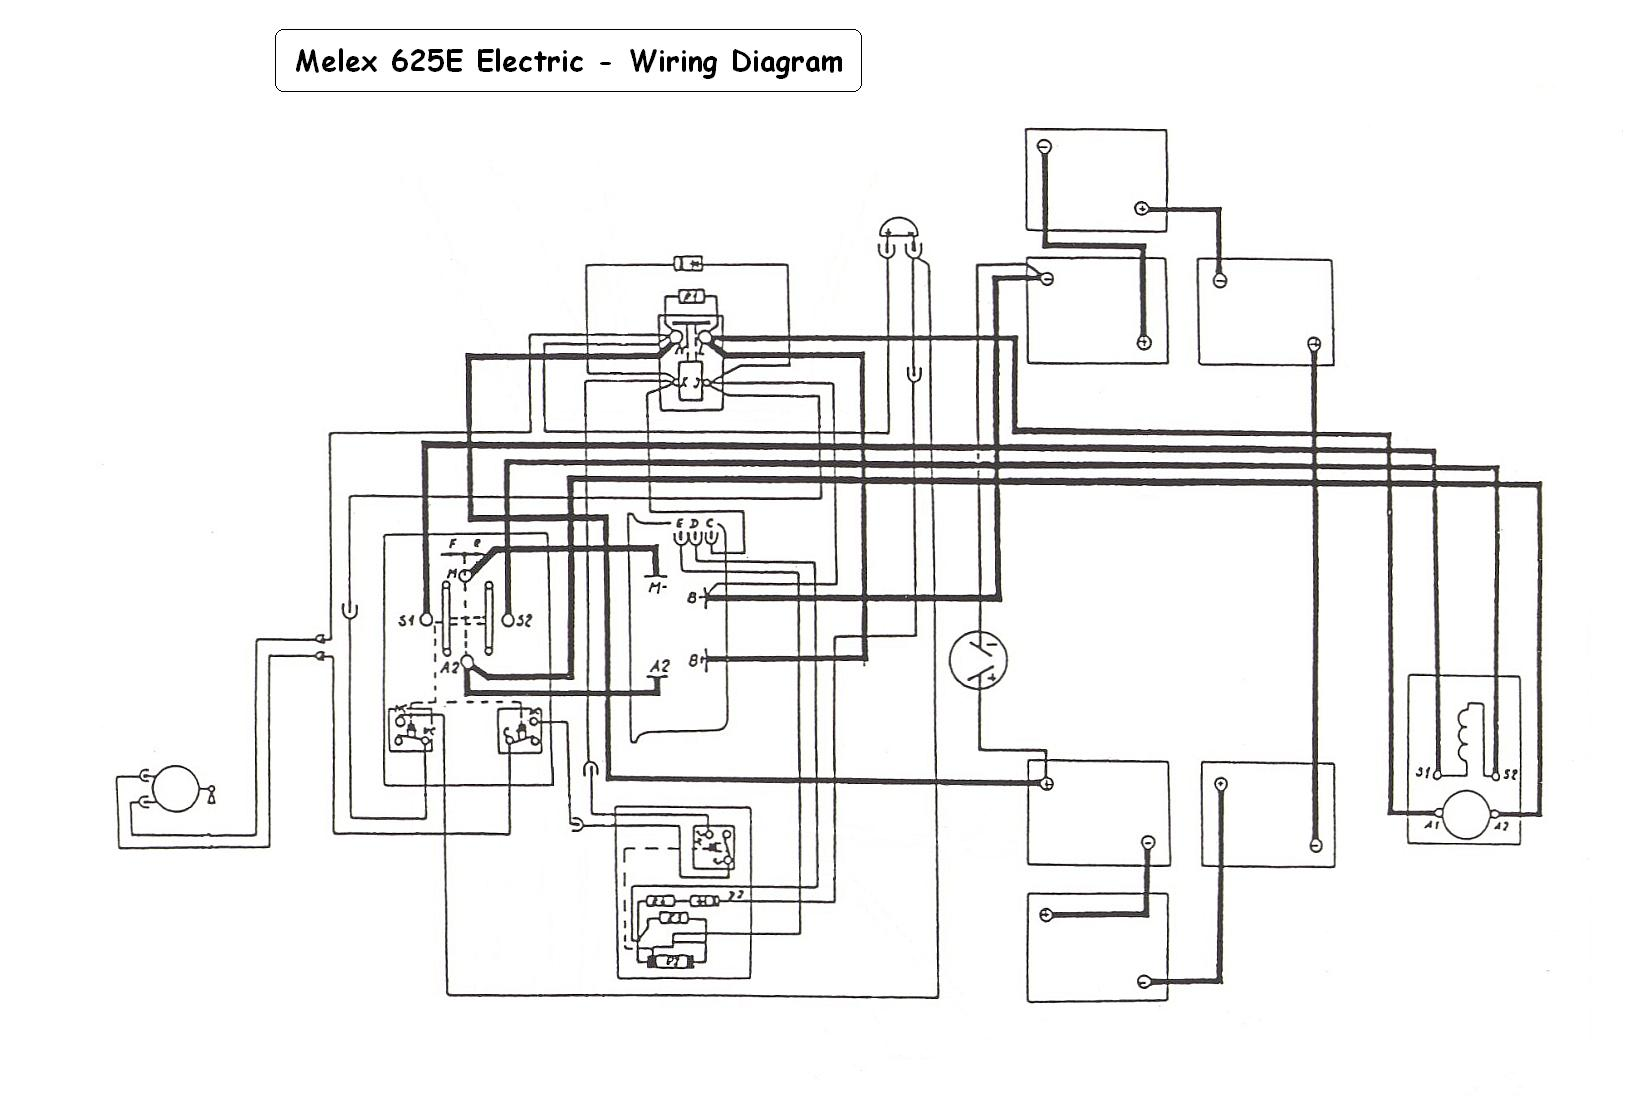 hight resolution of melex 625e wiring diagram schema wiring diagram online electric golf cart wiring schematic melex 625e wiring diagram